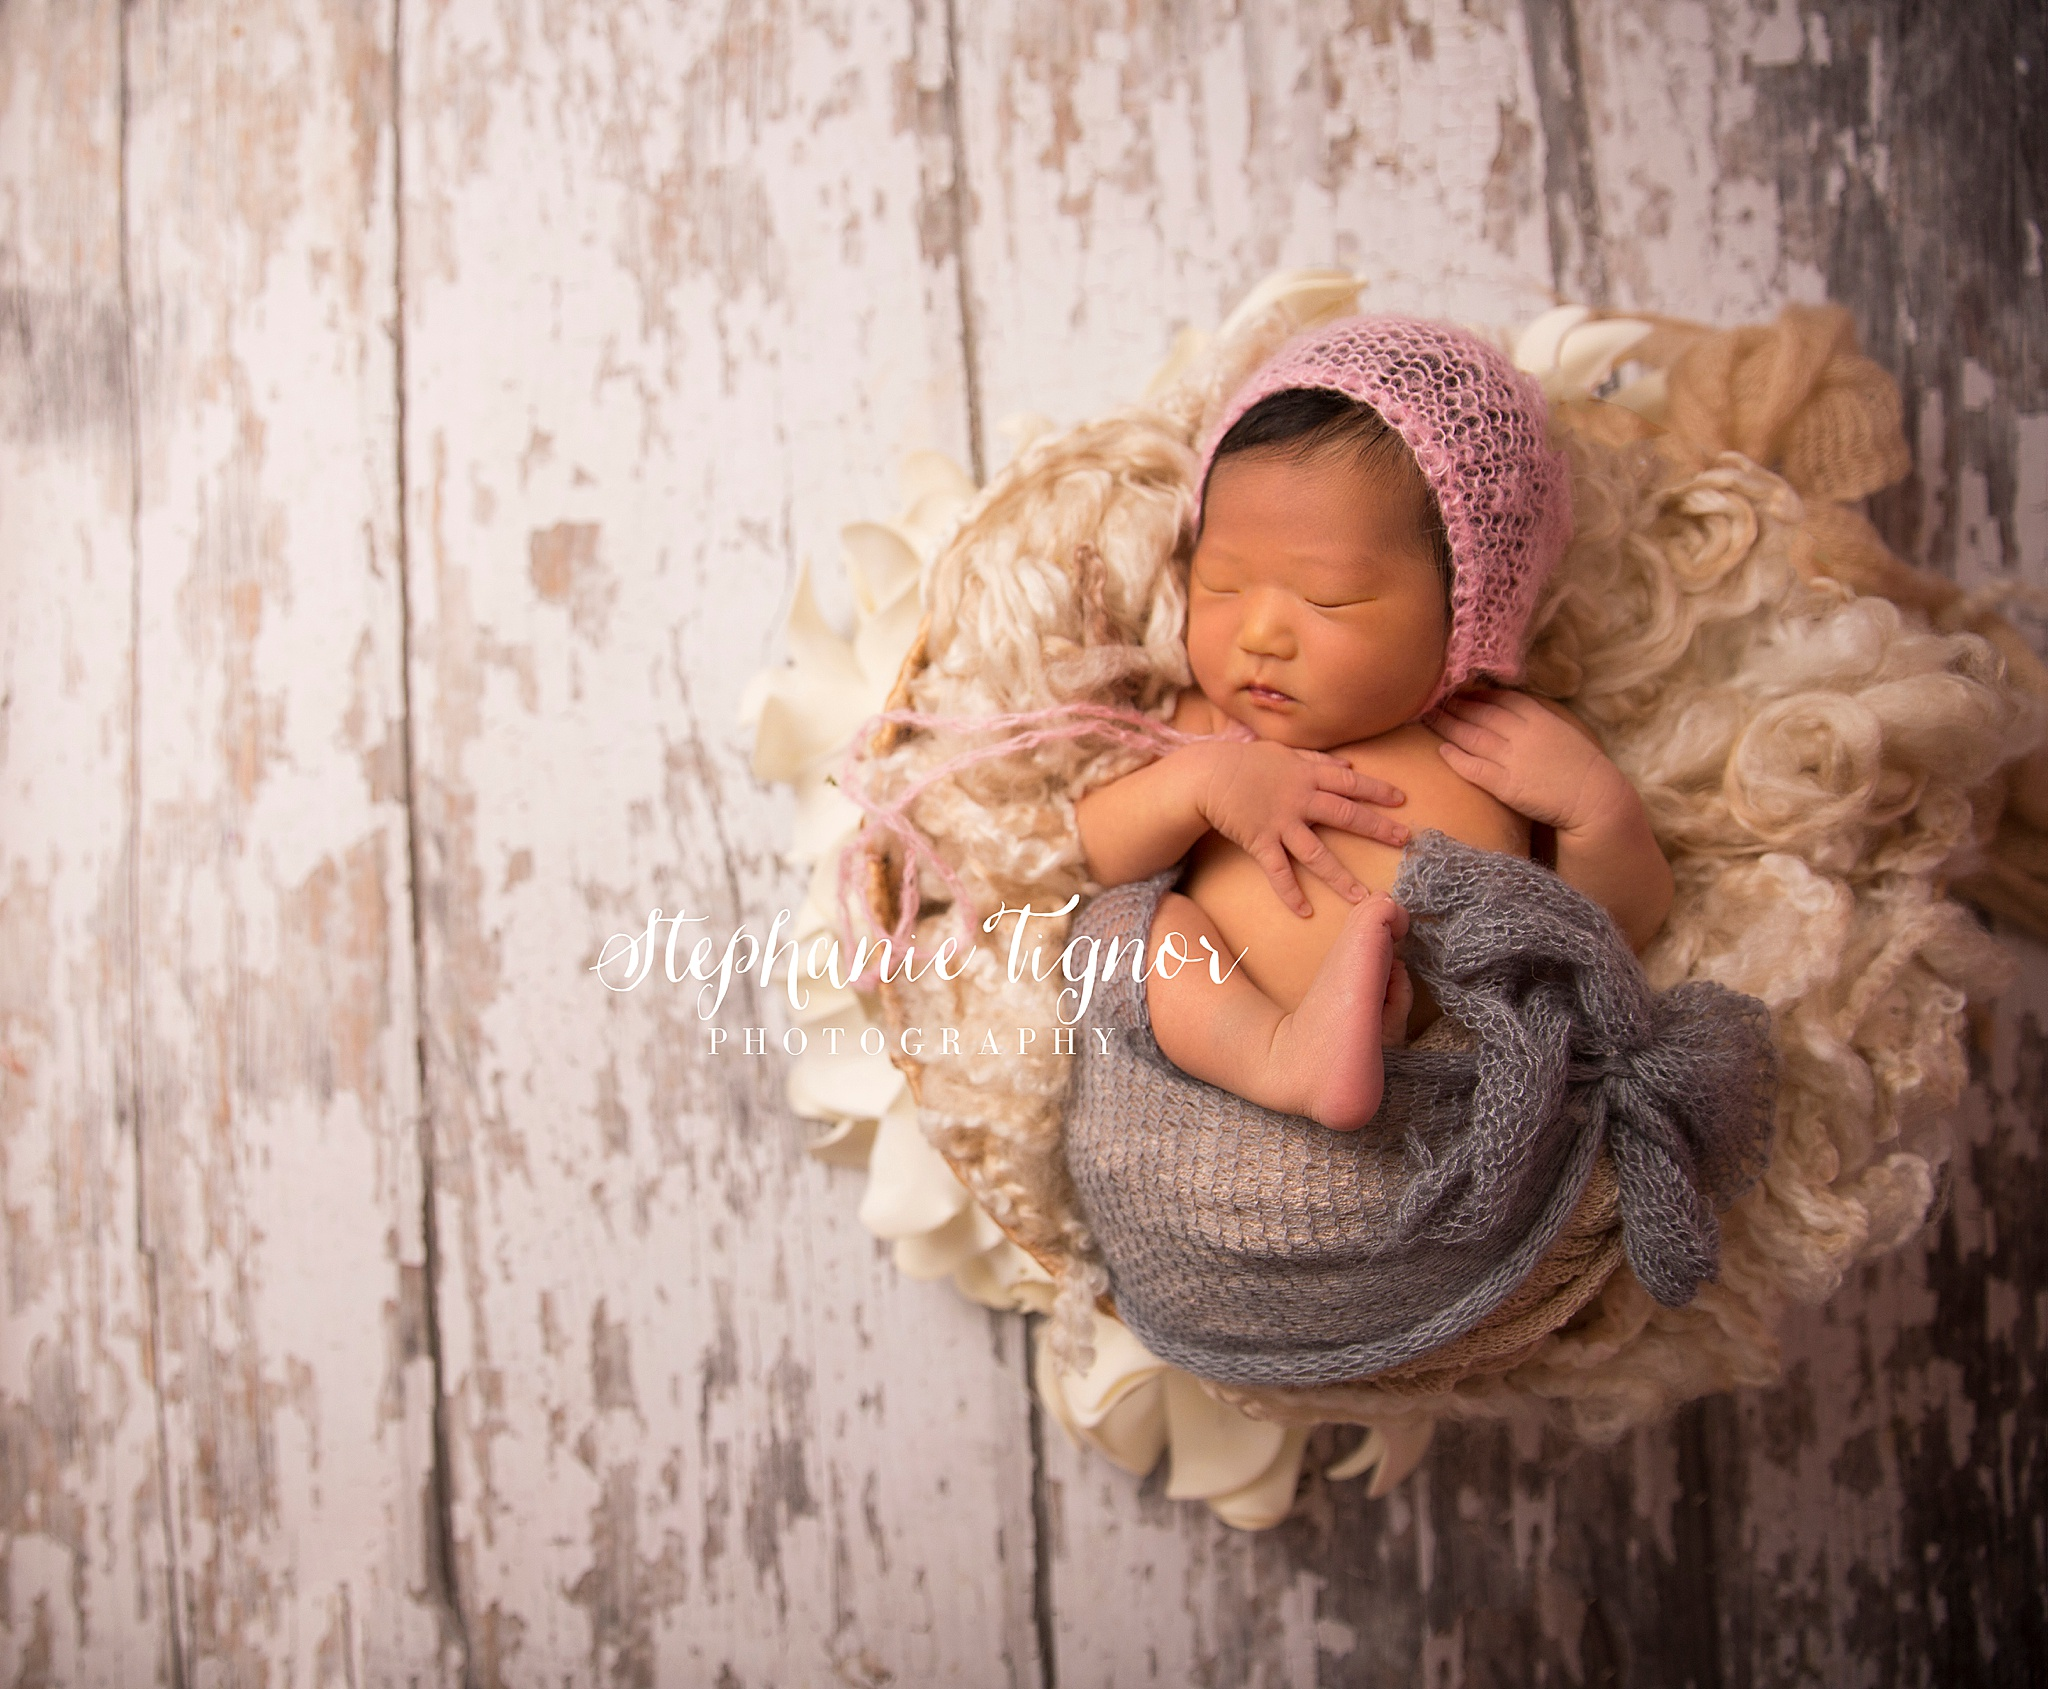 Stephanie Tignor Photography_Newborn Photographer_0075.jpg